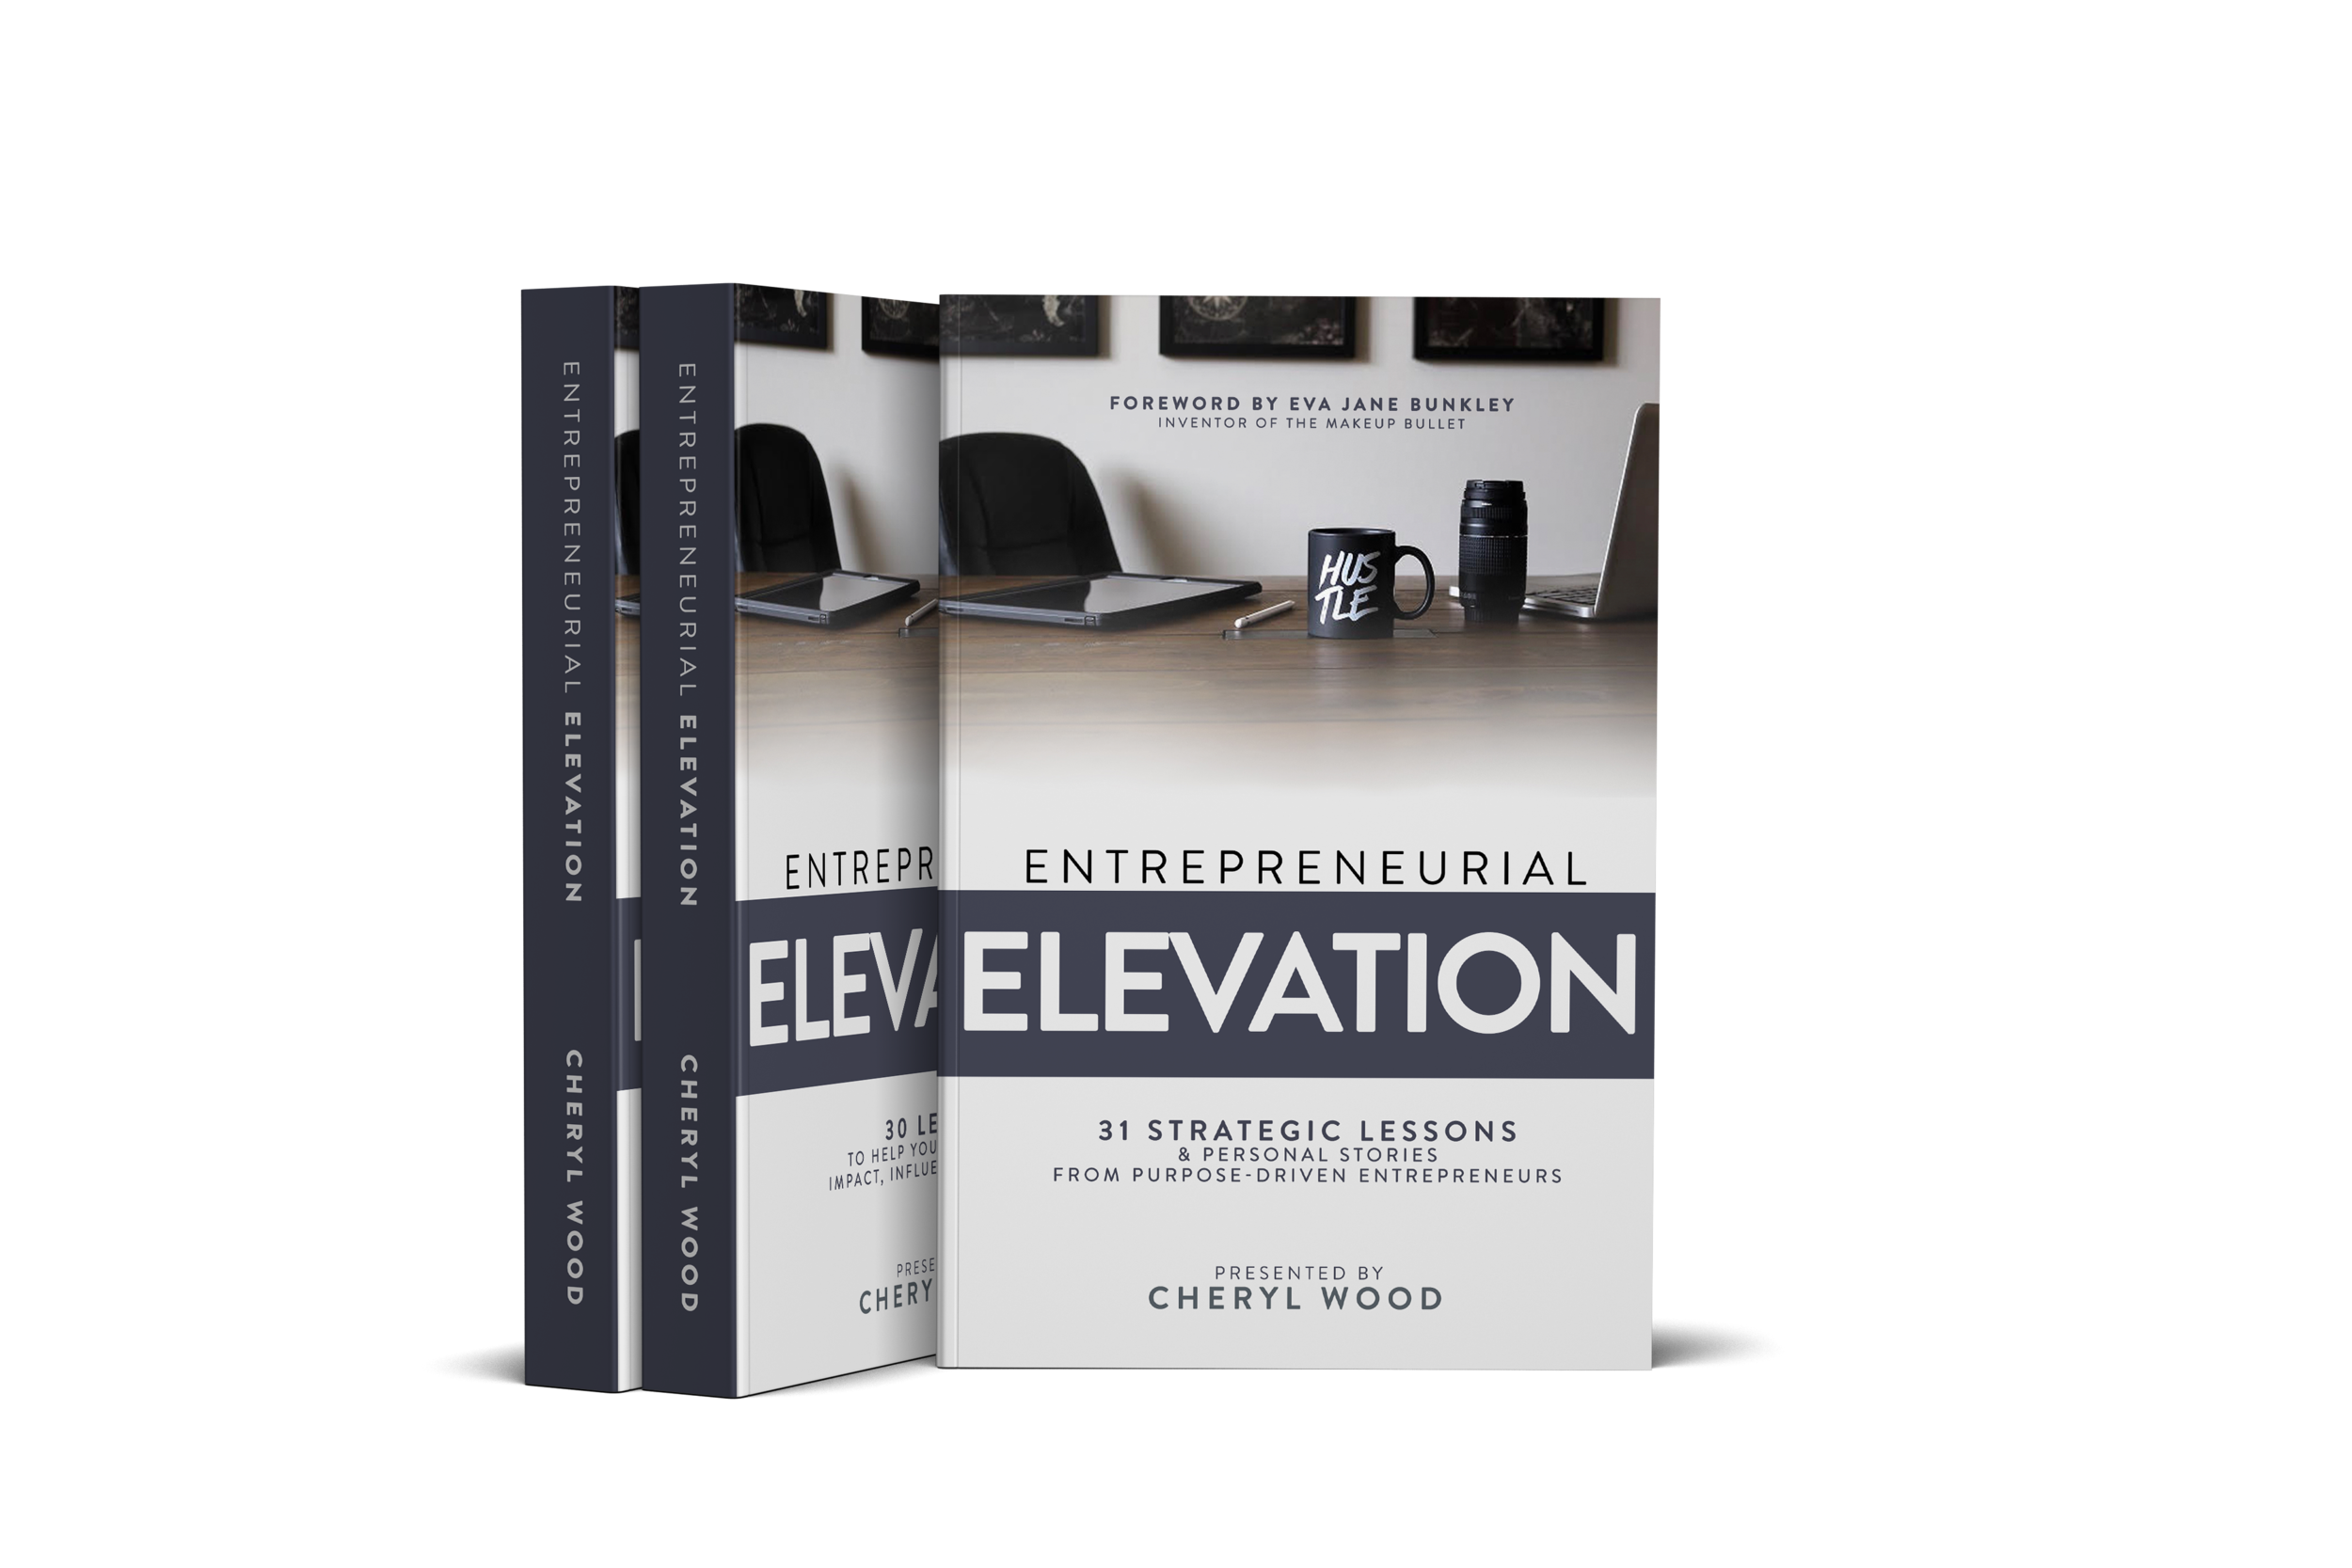 Entrepreneurial visions? - So you think you want to be an entrepreneur? Or have you gotten started and are now wondering what the heck you got yourself into? Buy now to unlock strategies to increase your impact, influence and income!